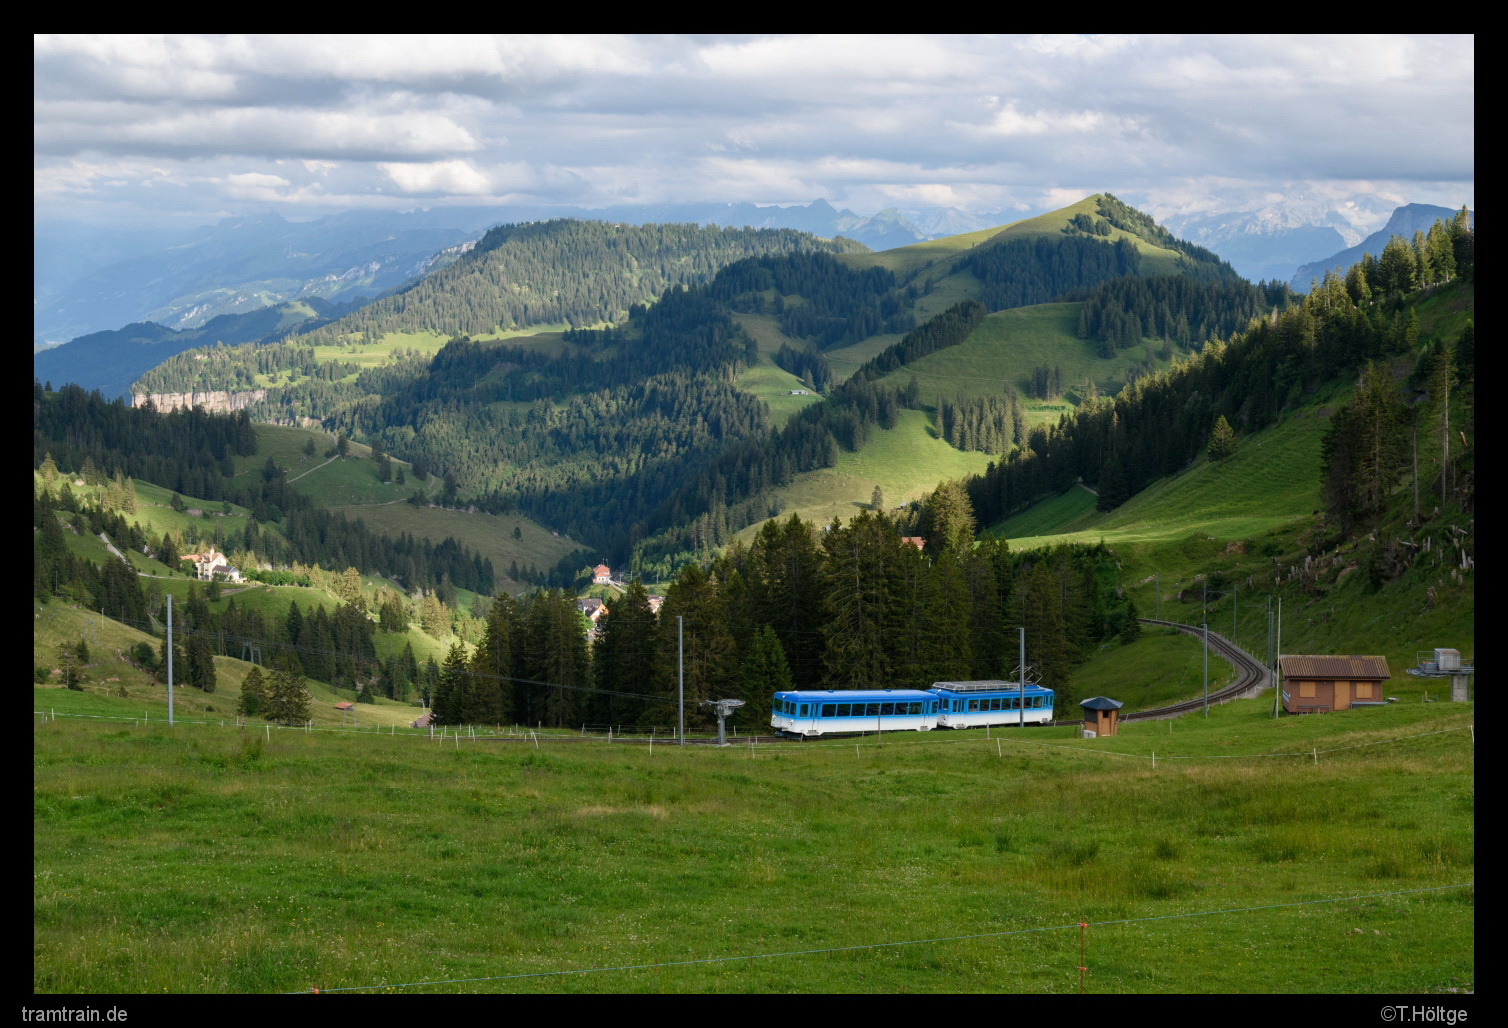 https://abload.de/img/t2020-07-05_102rigi-be1kxs.jpg